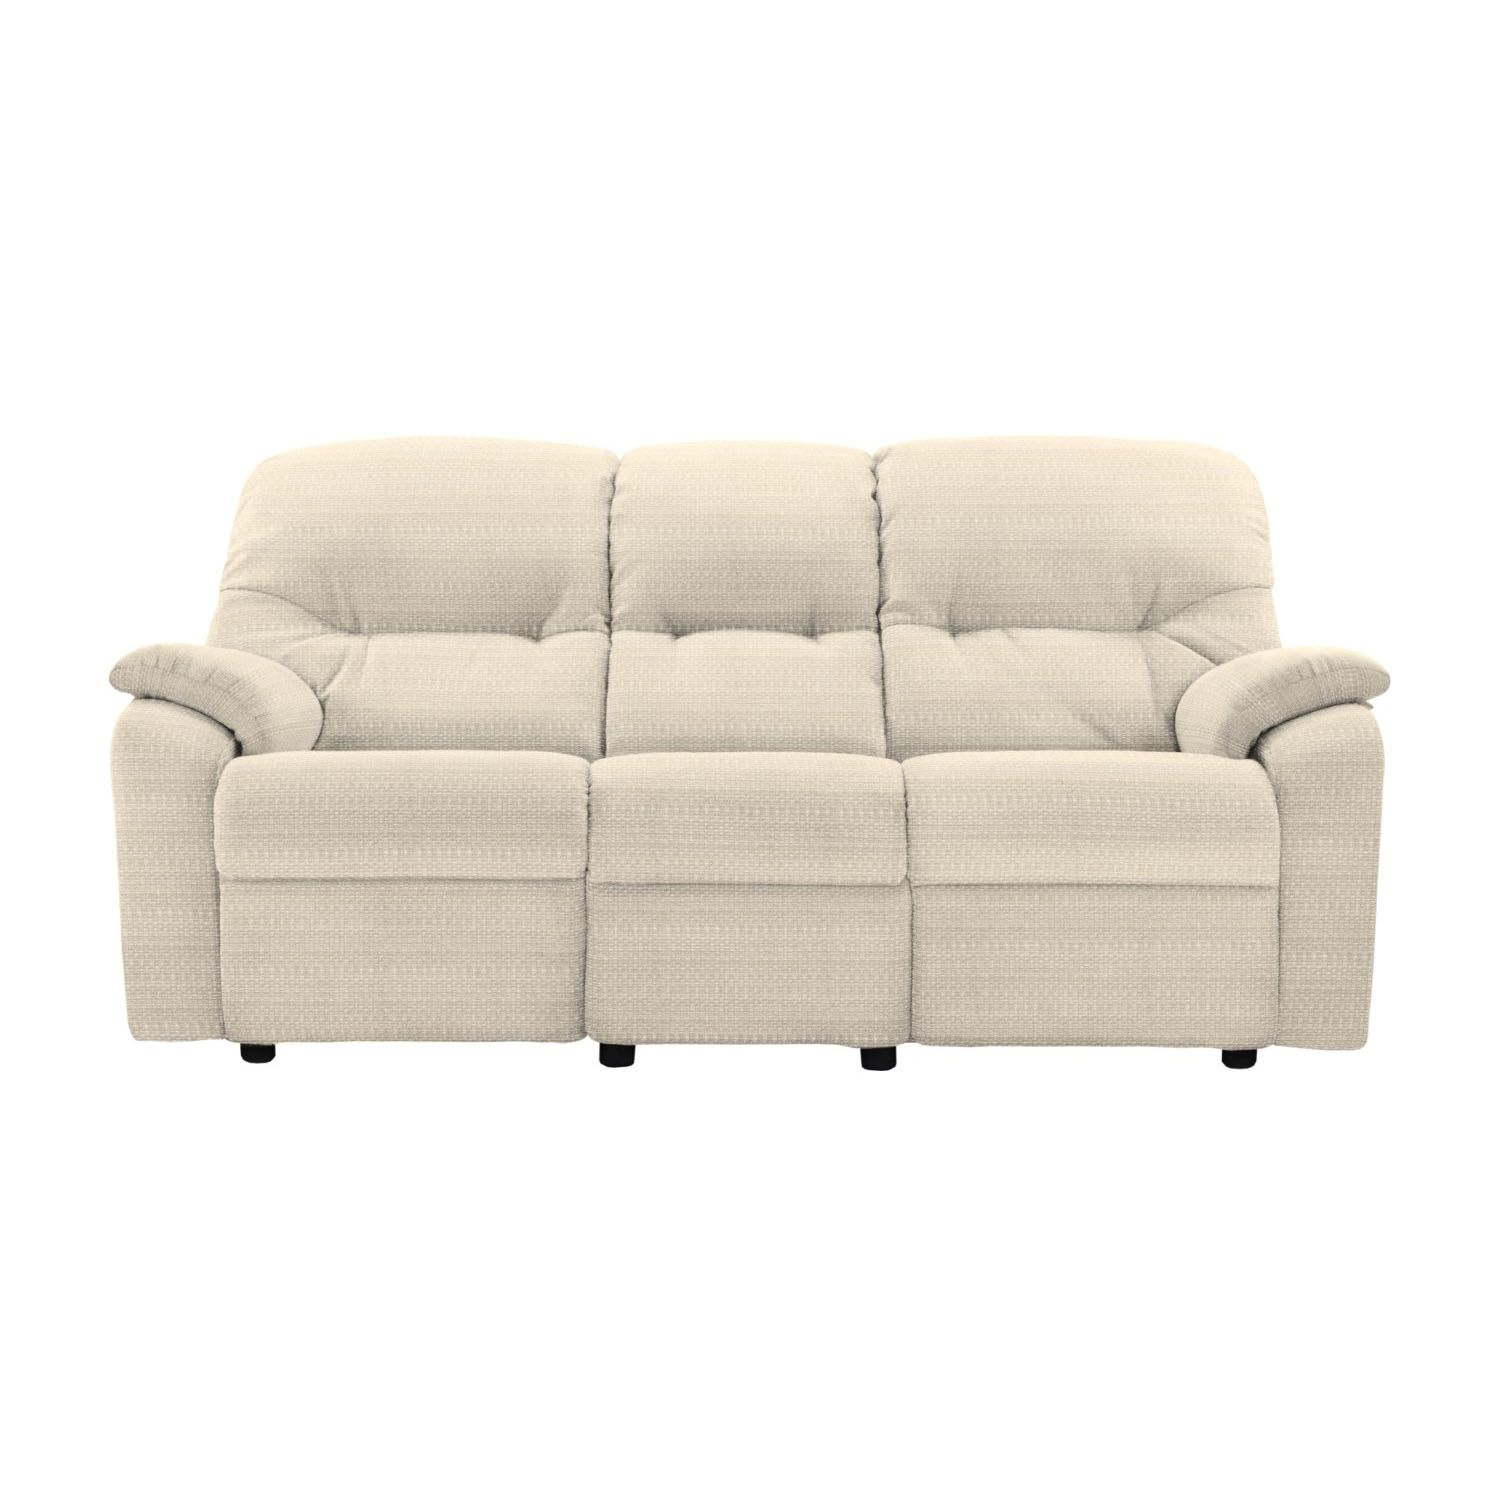 Image of G Plan Mistral 3 Seater Fabric Sofa